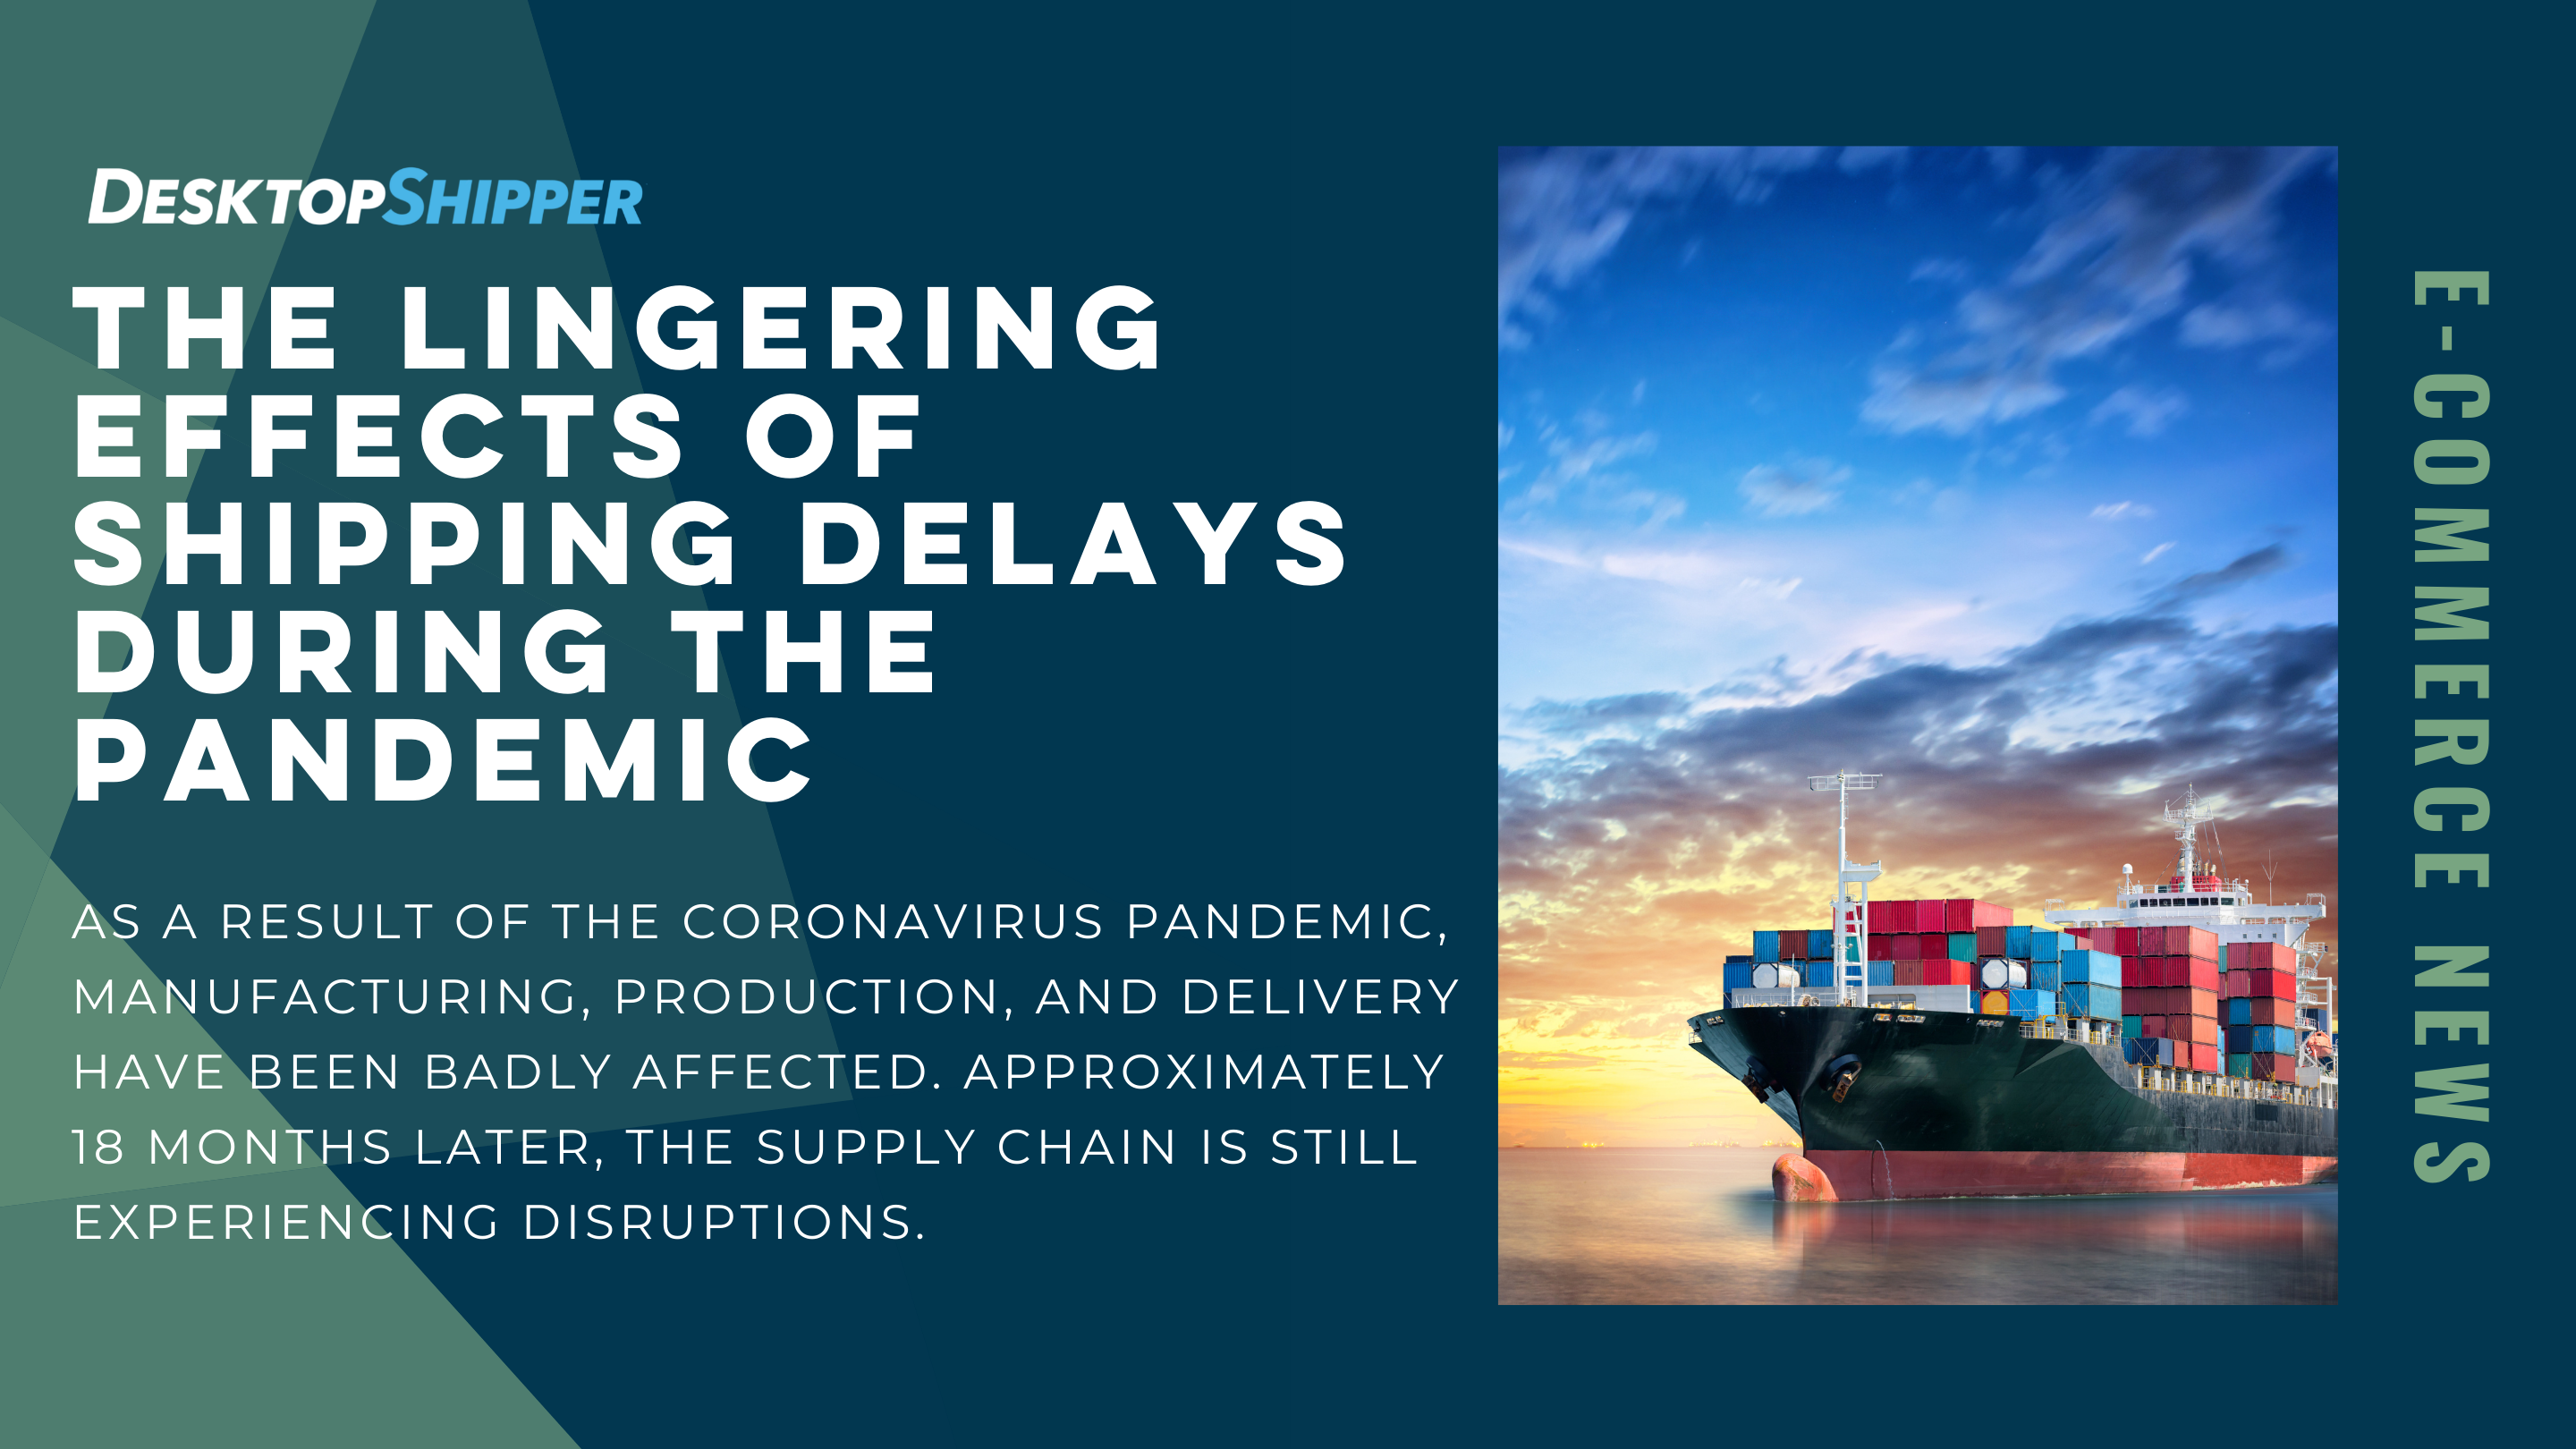 Shipping Delays During Pandemic